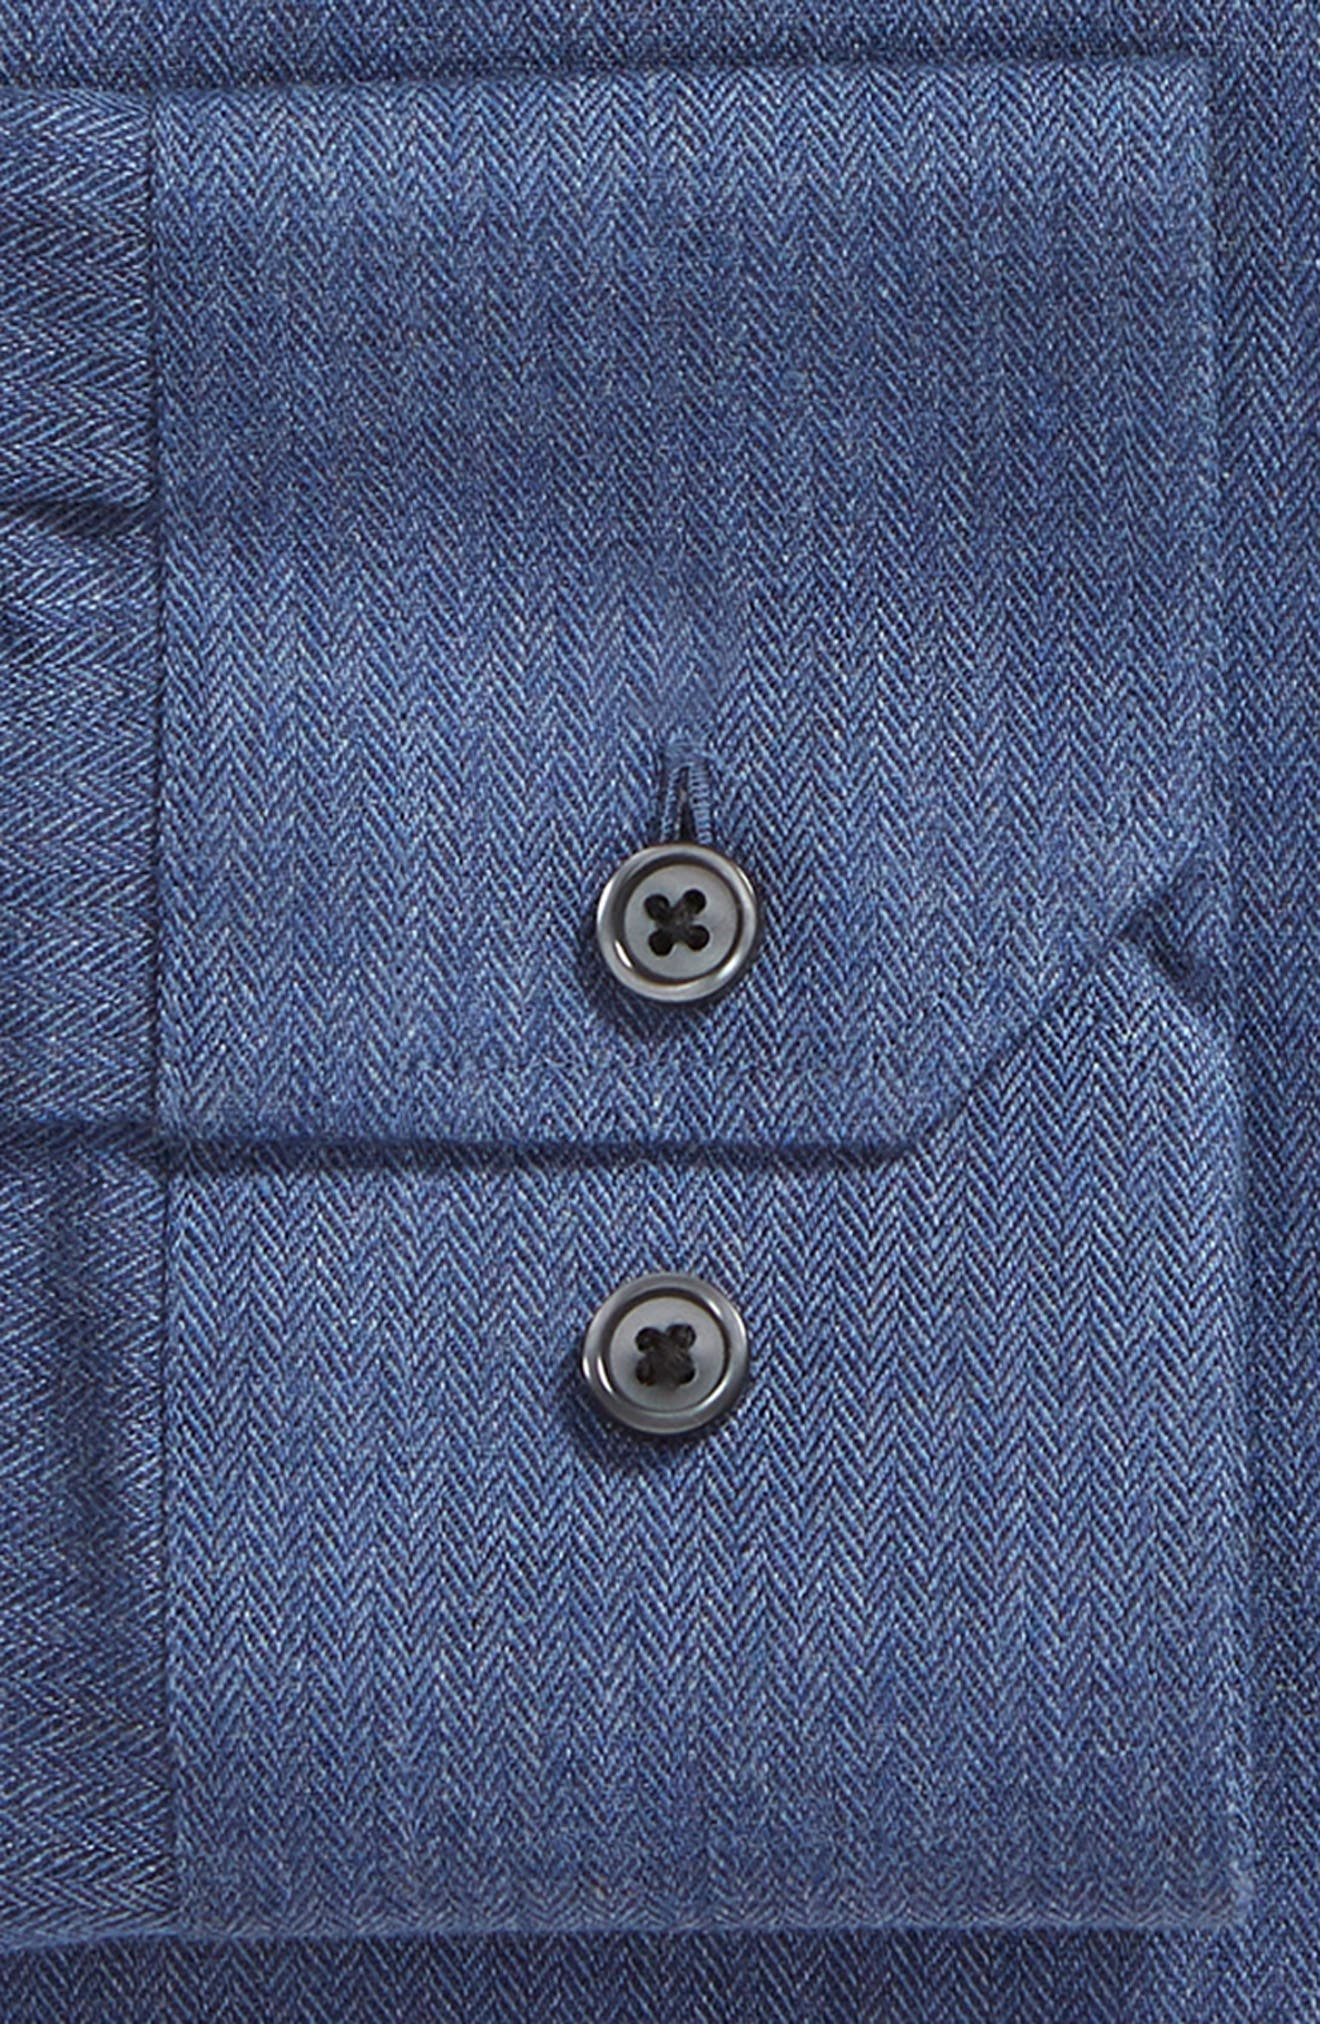 Trim Fit Herringbone Dress Shirt,                             Alternate thumbnail 6, color,                             BLUE CANAL